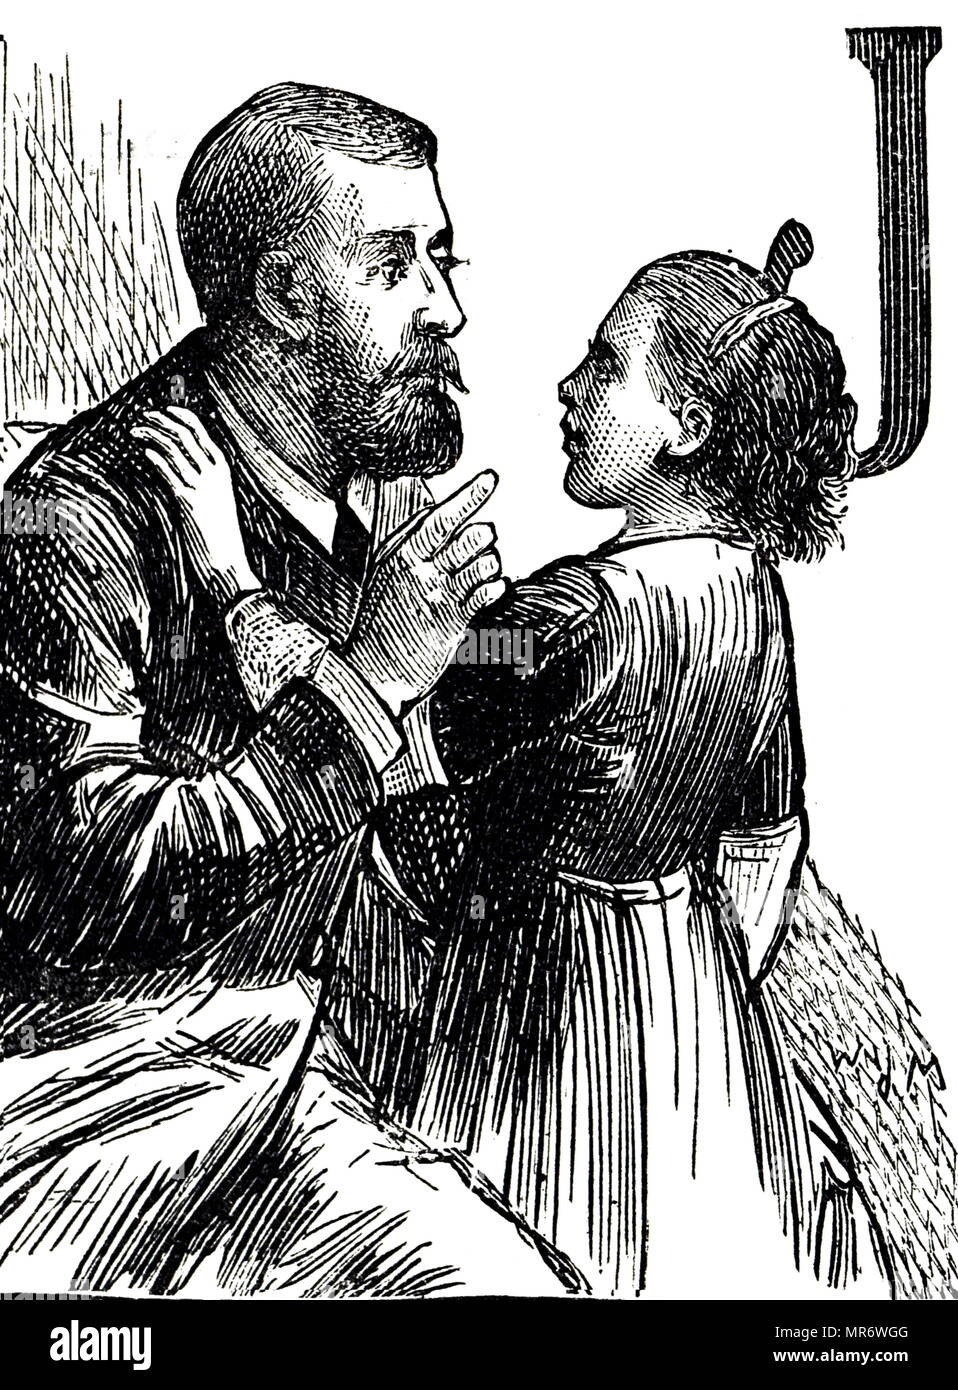 Engraving depicting a child learning to speak at the Deaf and Dumb home for Jewish children in Notting Hill, London. Dated 19th century - Stock Image